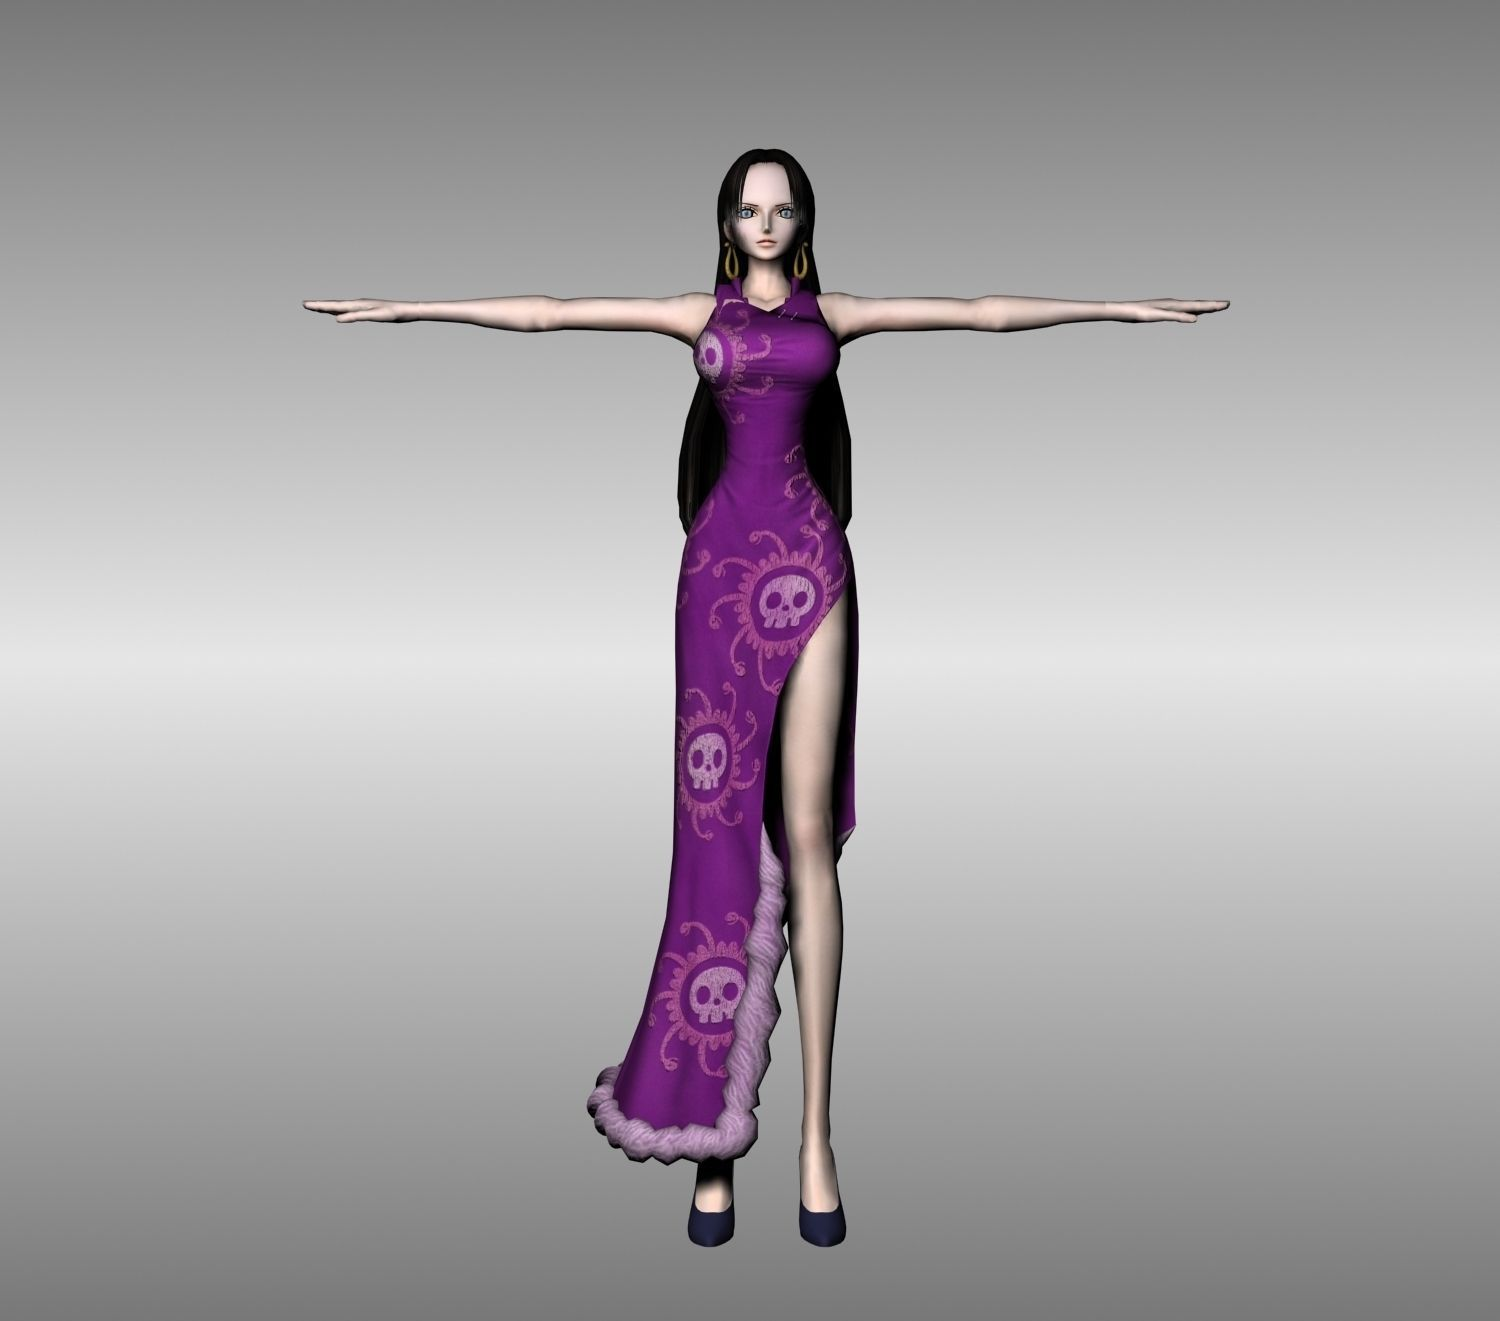 Boa Hancock One Piece 3D Model Rigged